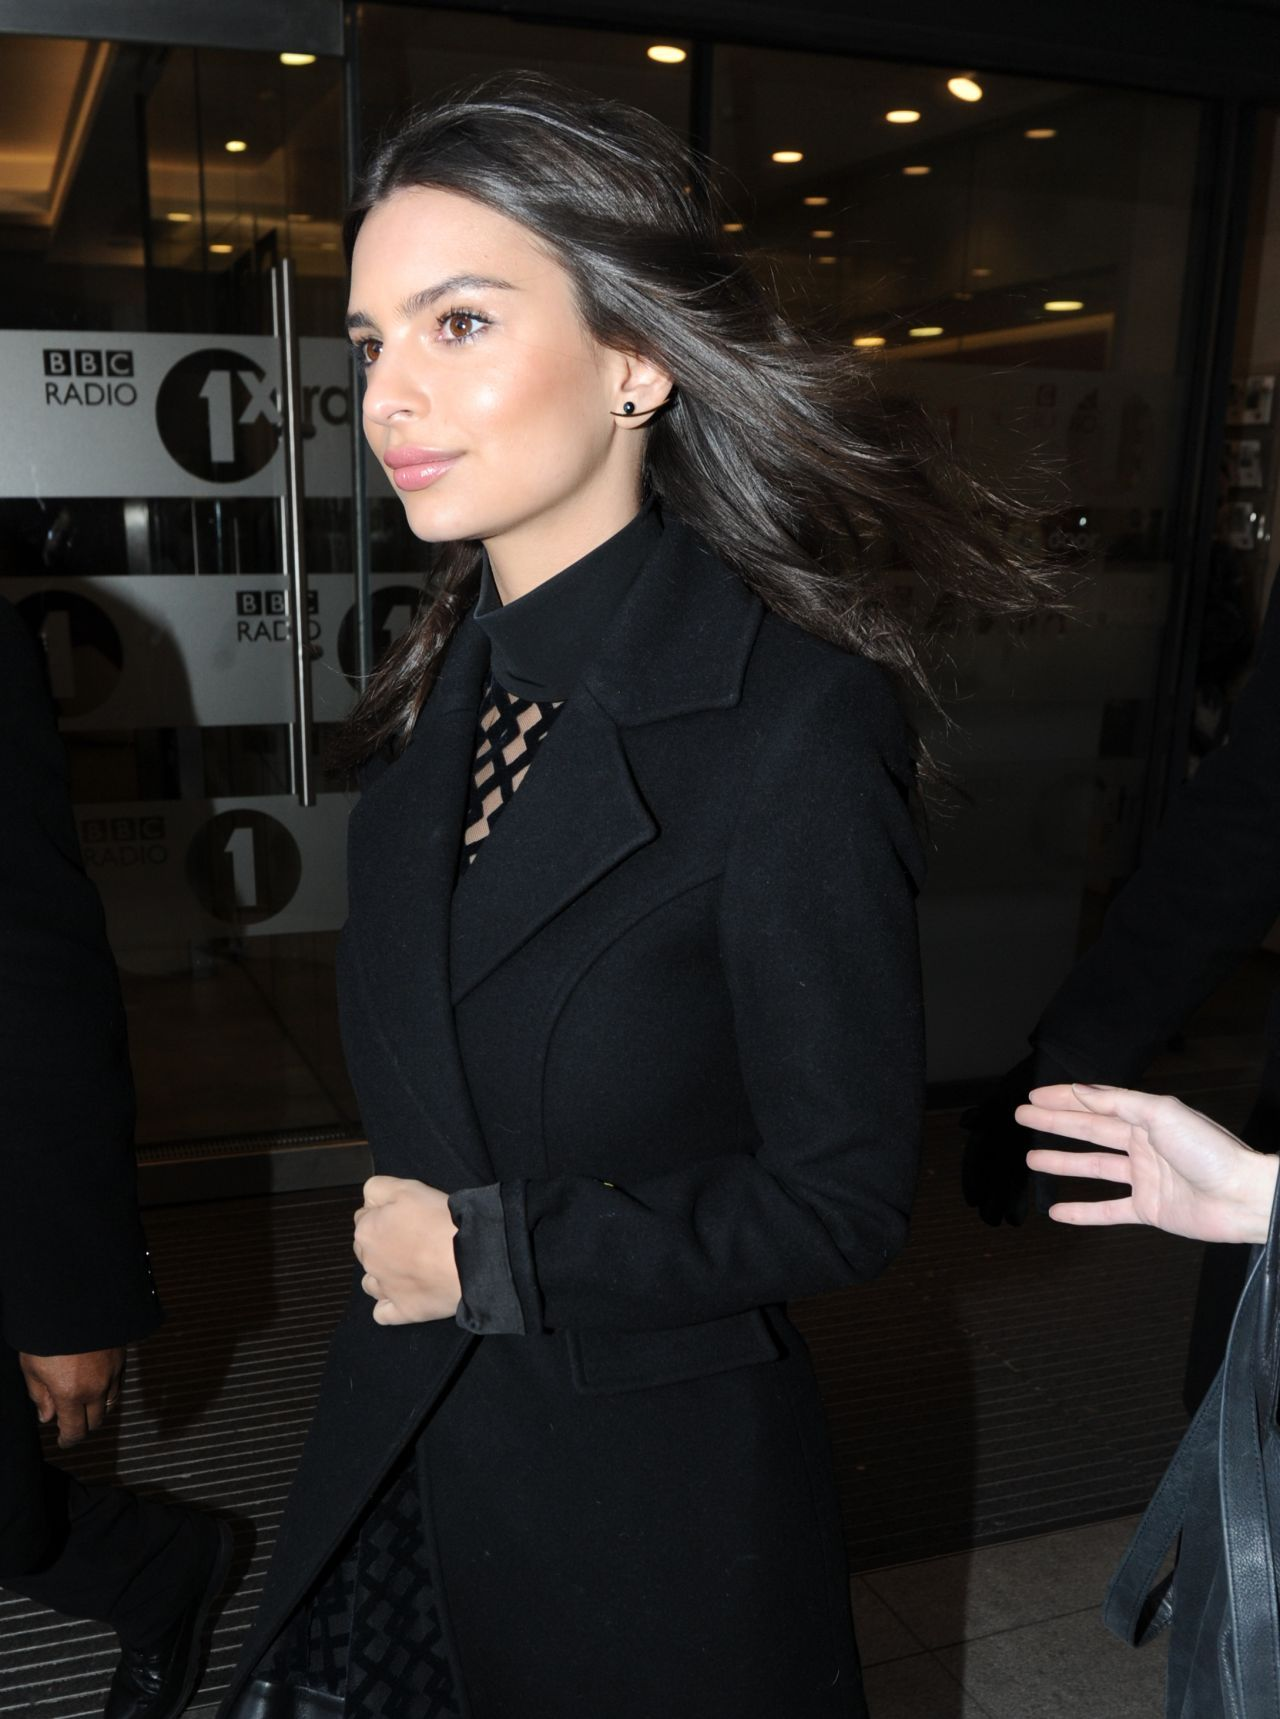 Emily Ratajkowski Street Style U2013 At Bbc Radio 1 Studios In London